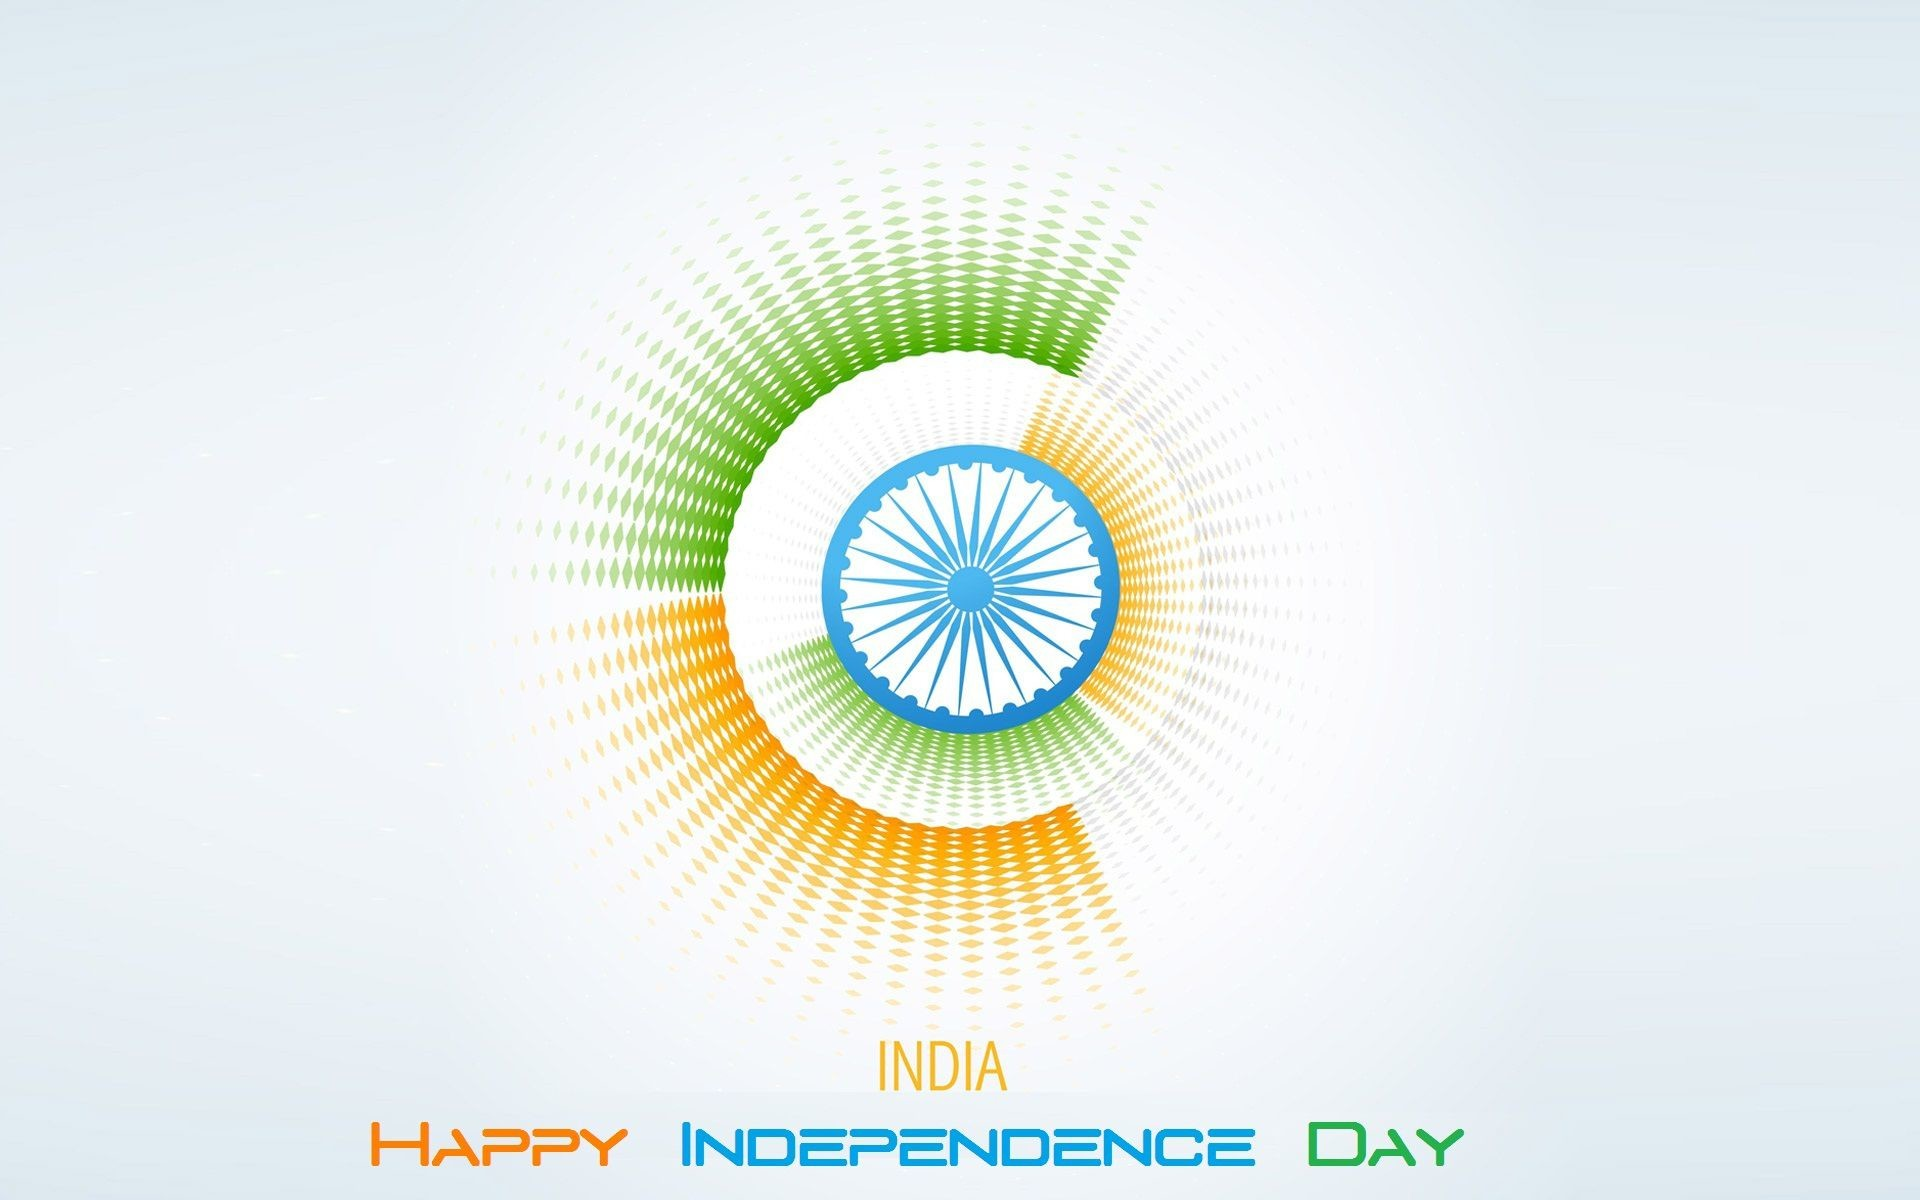 essay on independence day of india in kannada Recent Posts